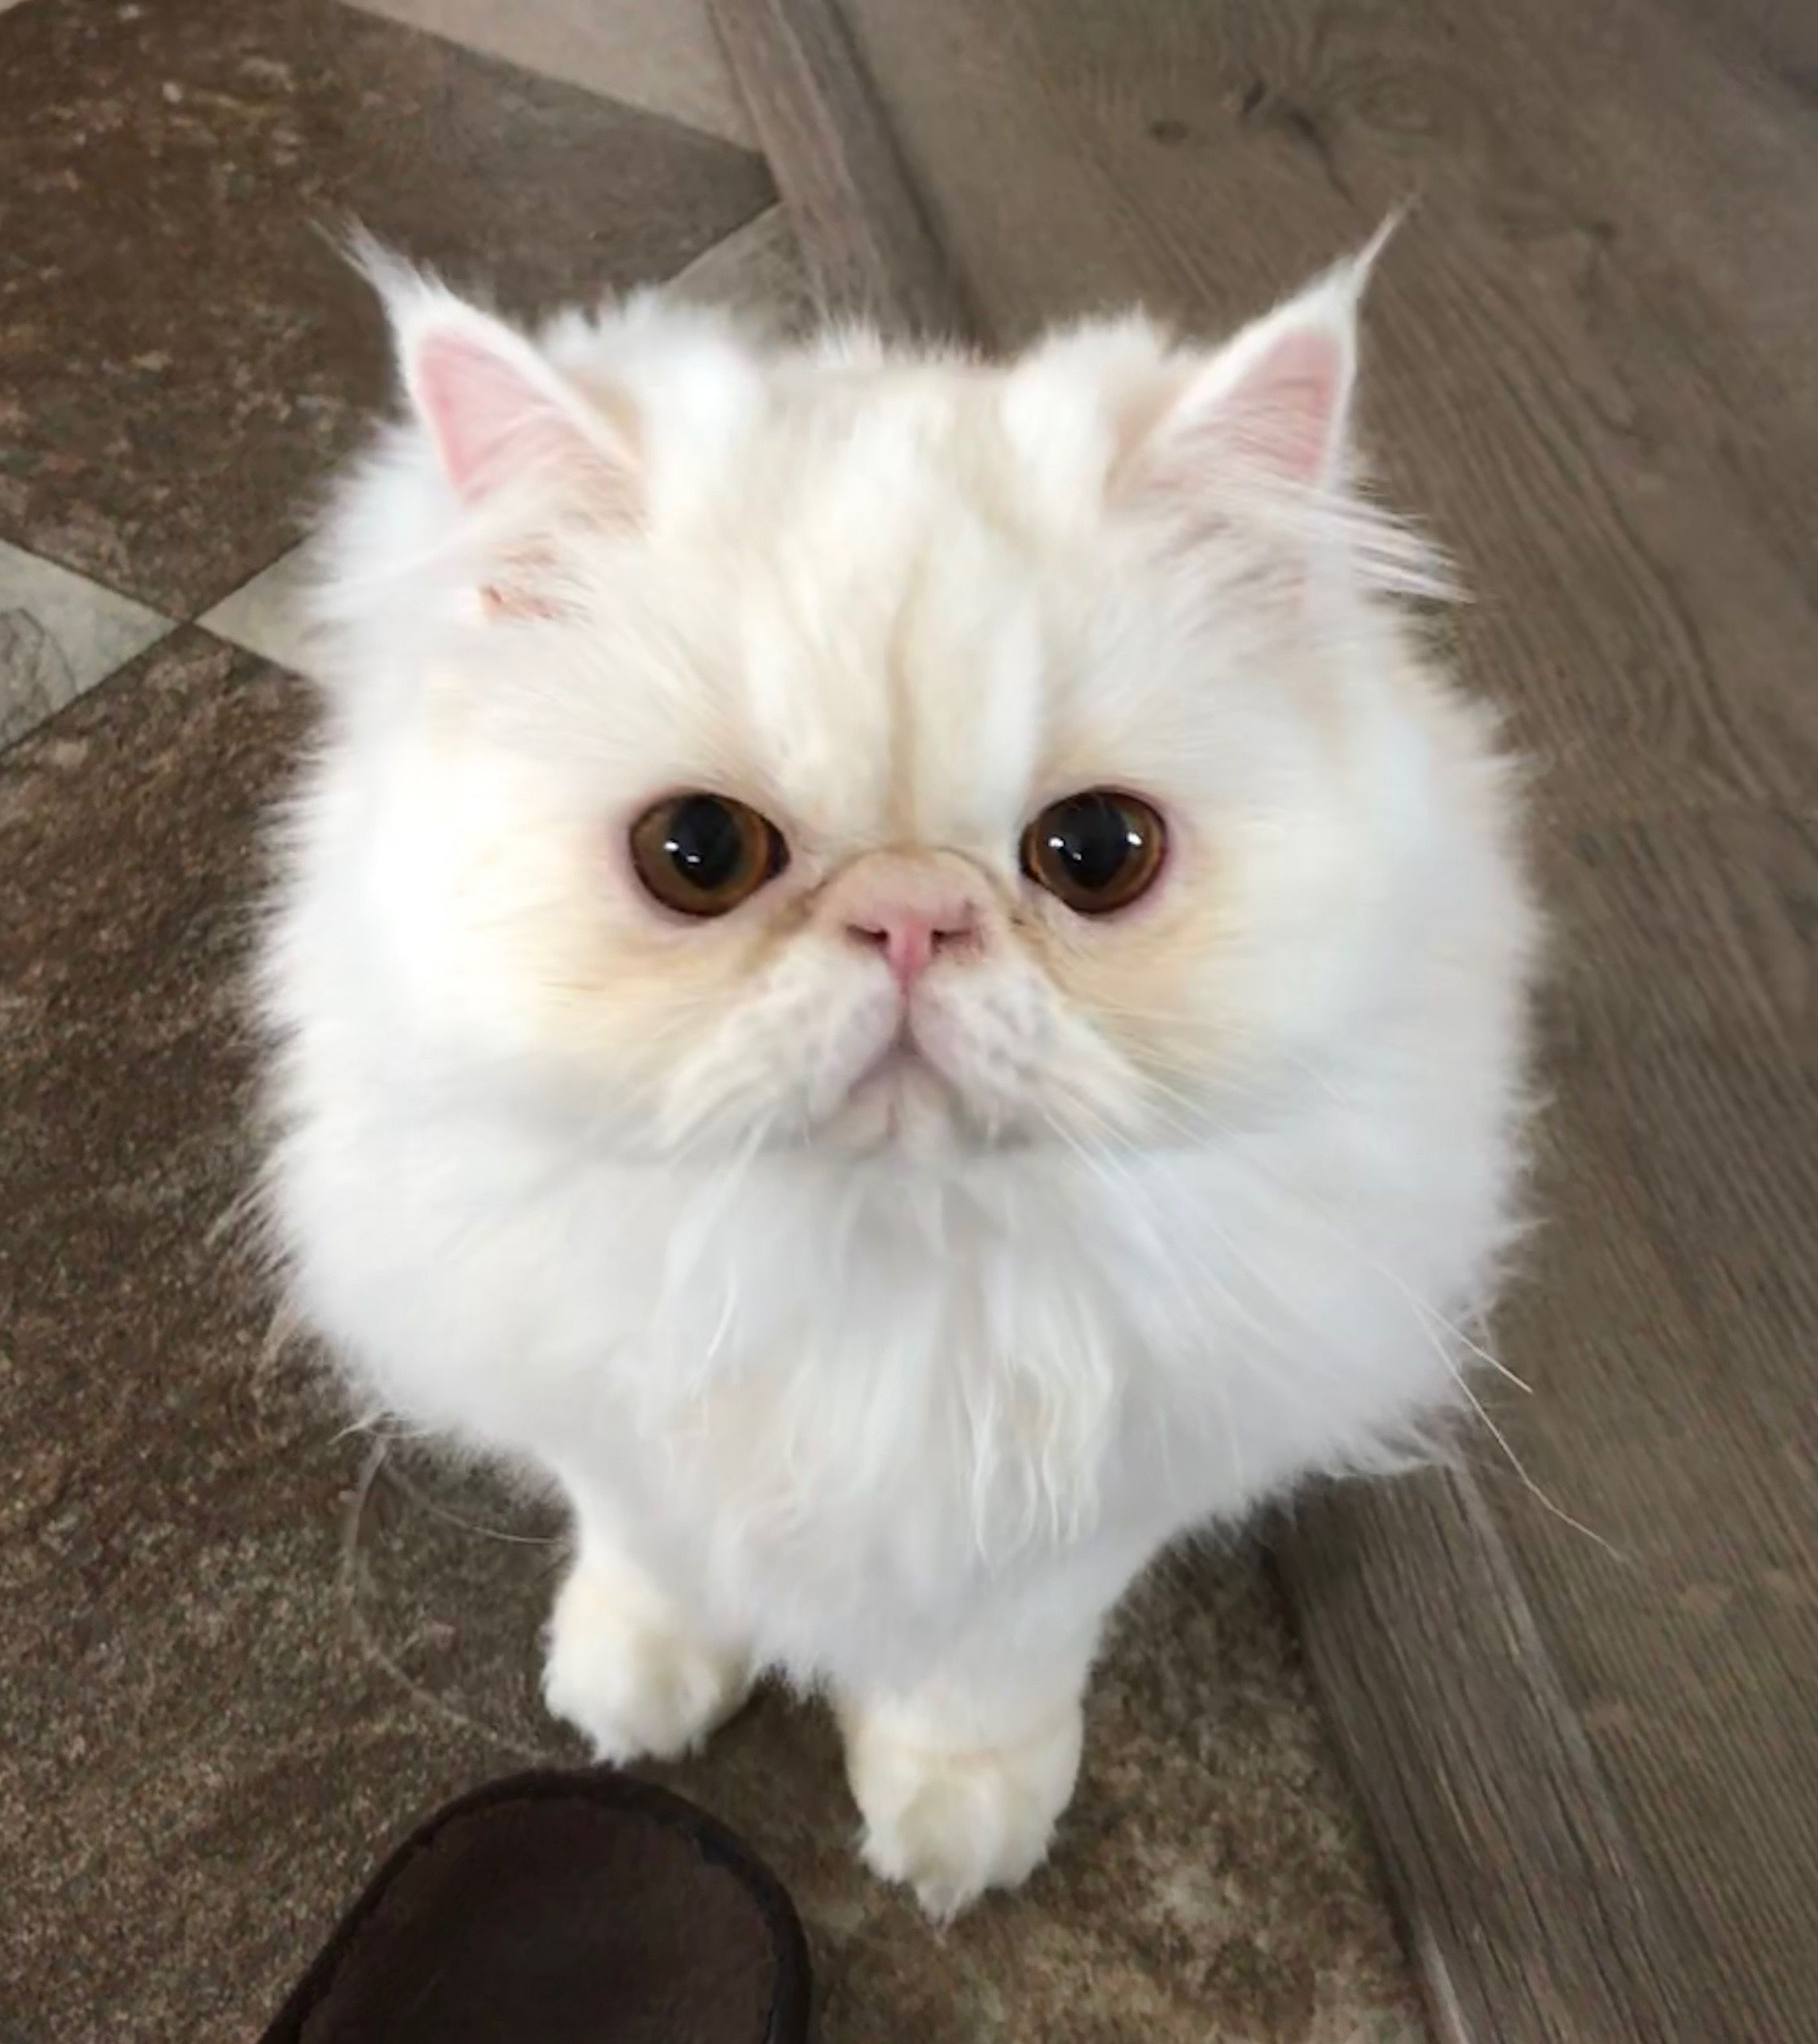 Pin By Kristel On Animals Persian Kittens Kittens Cat Breeds